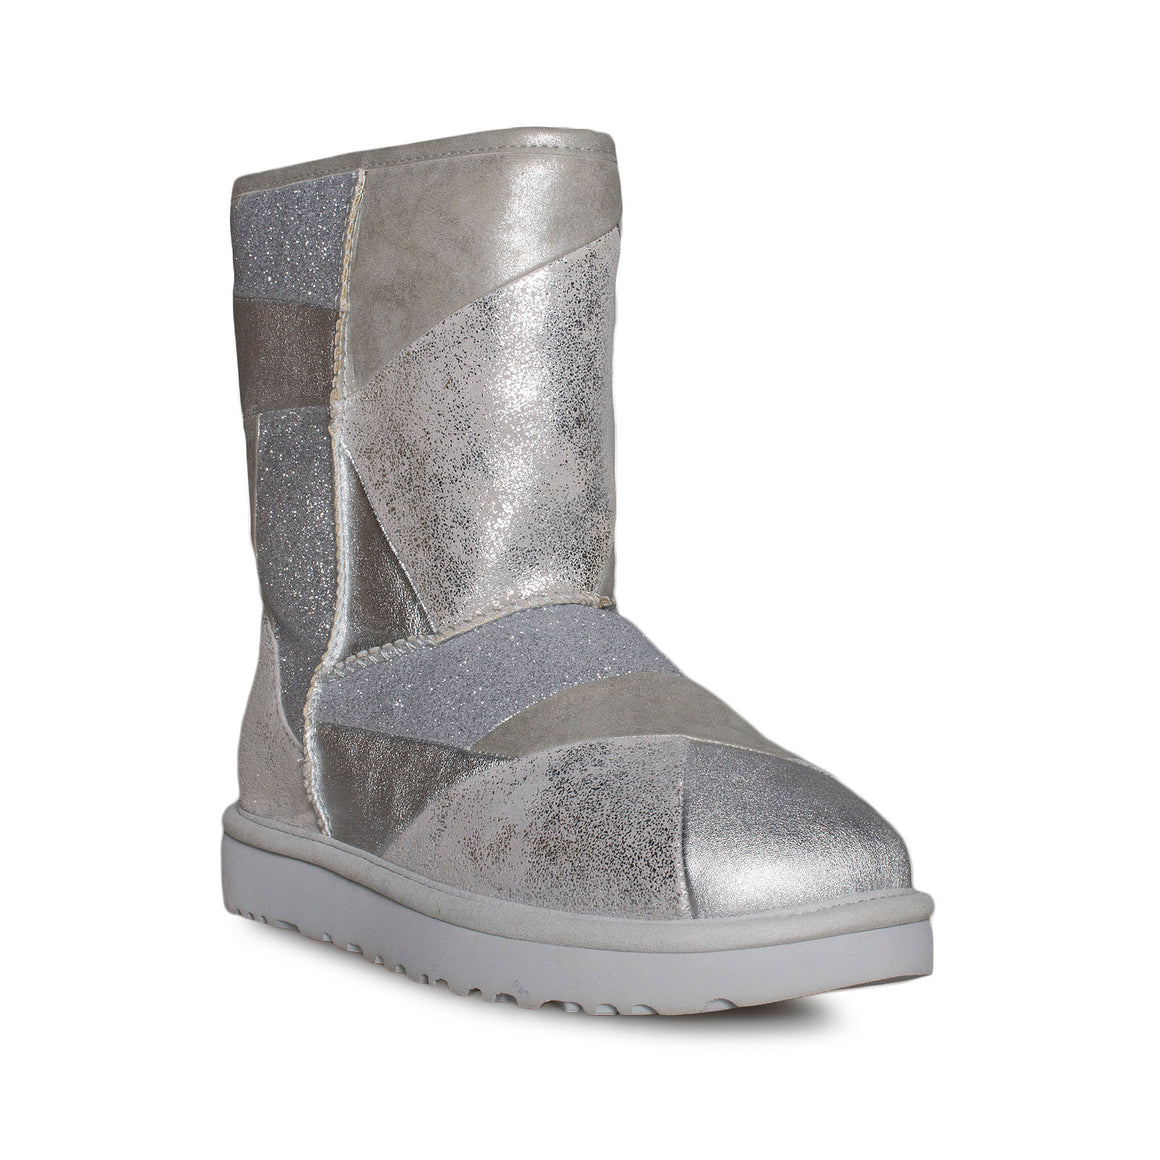 UGG Classic Glitter Patchwork Silver Shoes - Women's